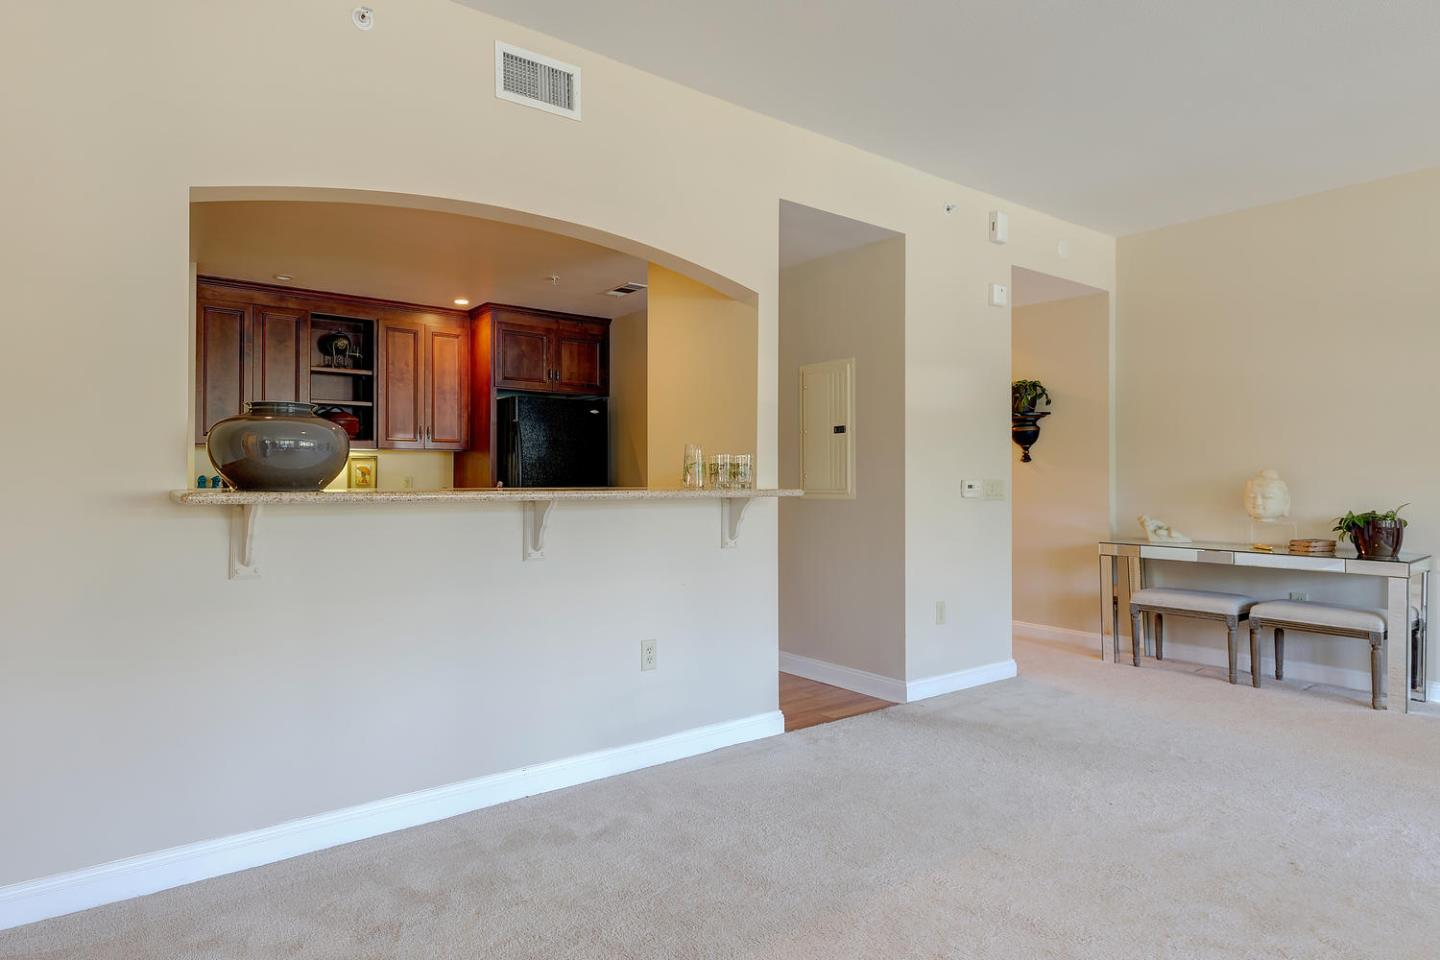 Additional photo for property listing at 10 Crystal Springs Road  San Mateo, Kalifornien 94402 Vereinigte Staaten